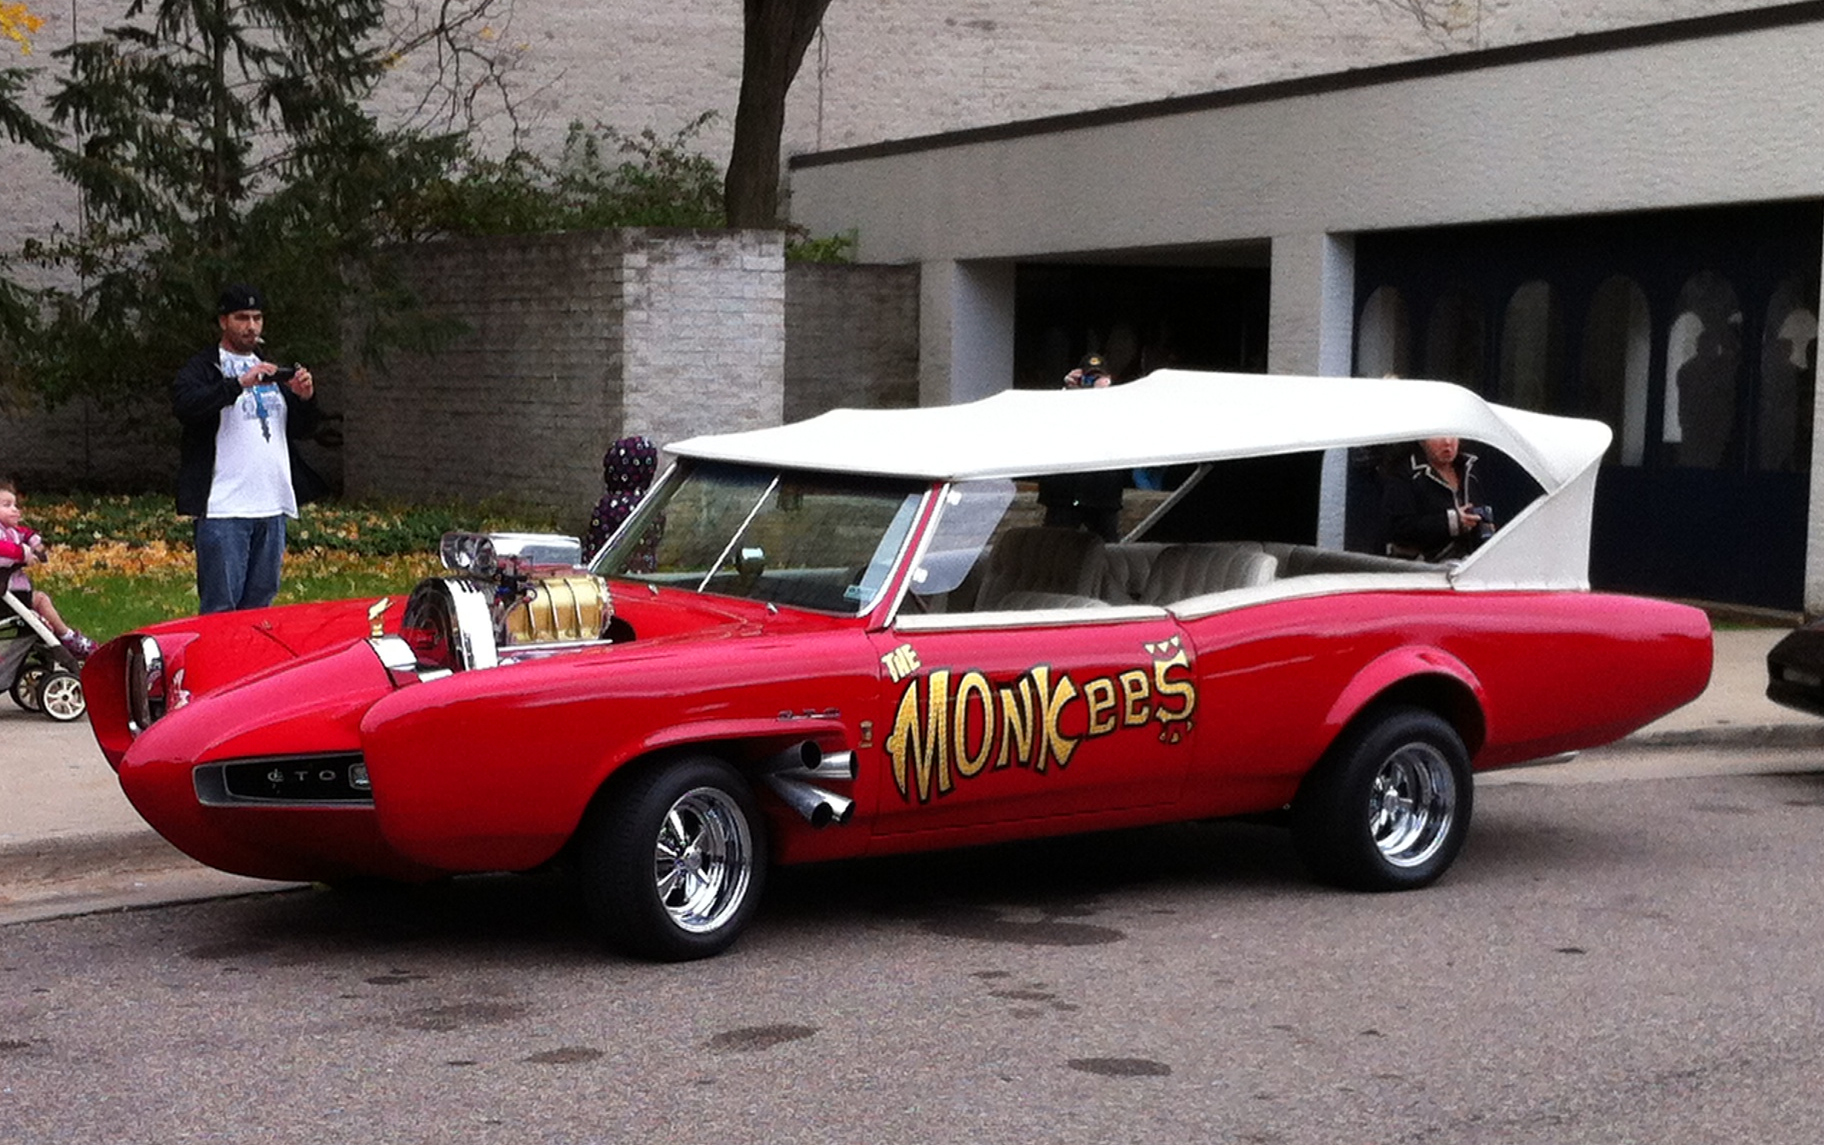 The Monkees were supposed to be broke right? So how come they had a house on the beach and drove this tricked out car?